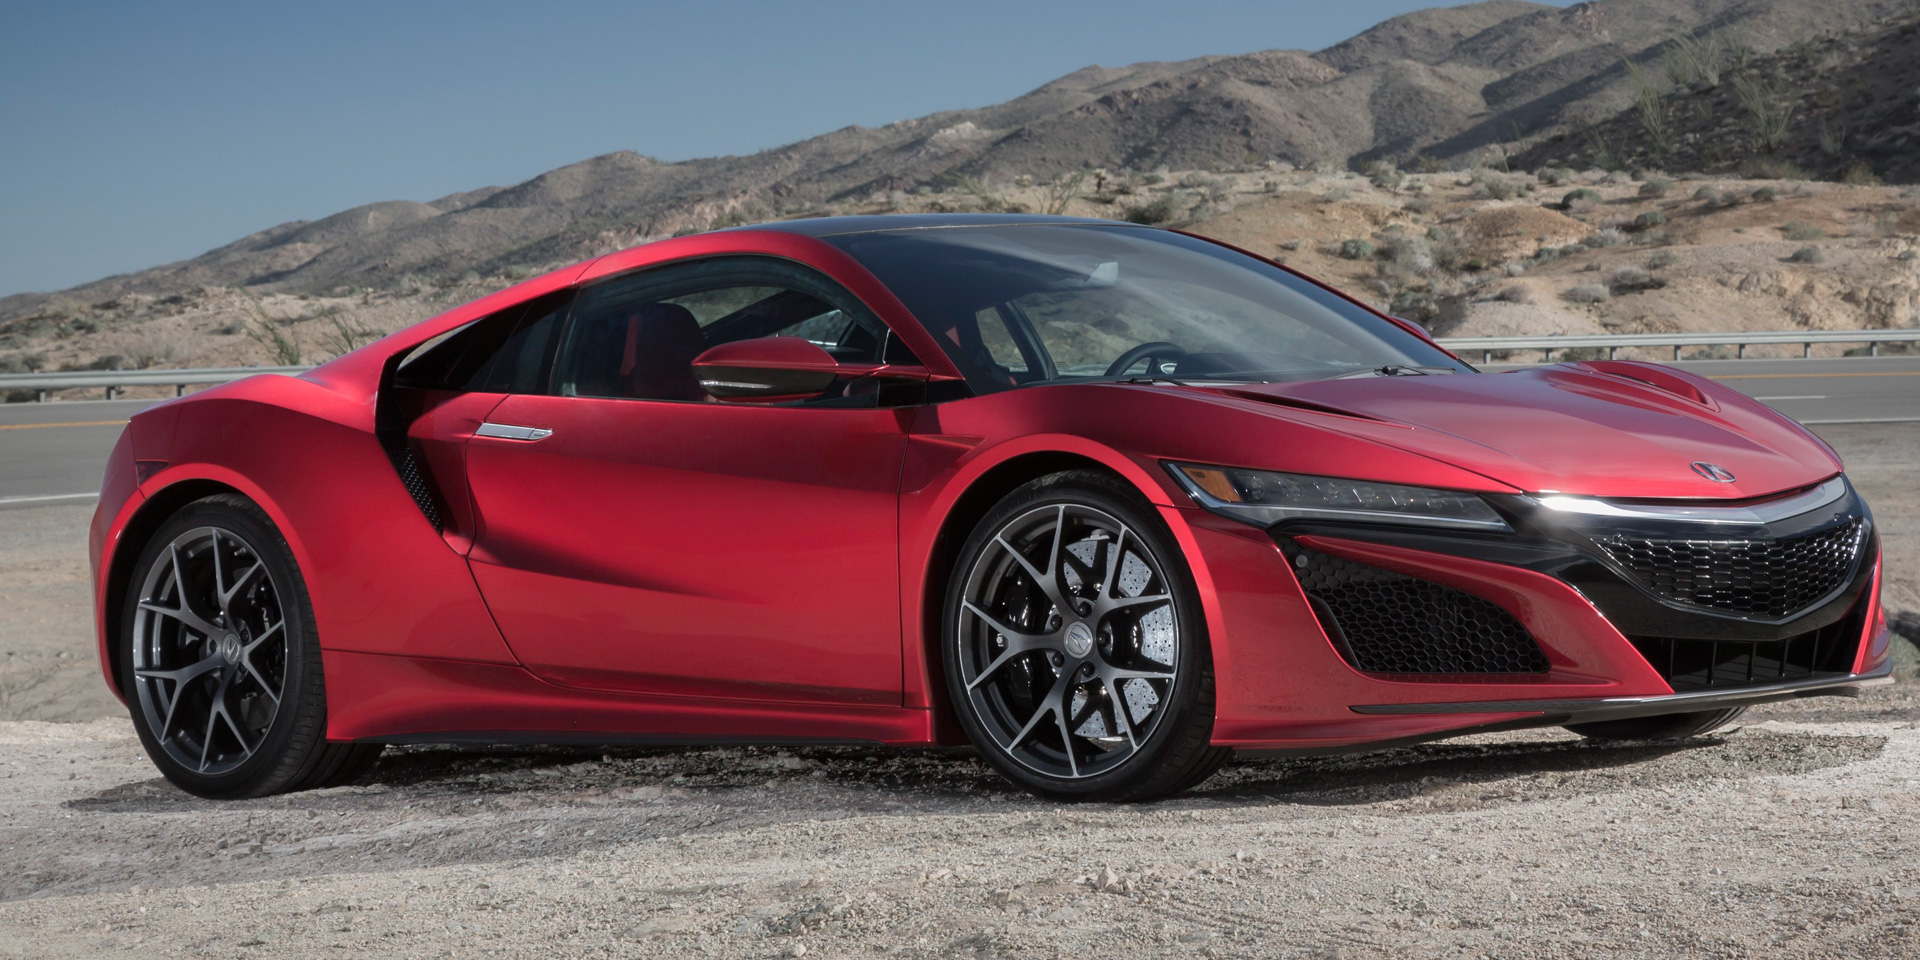 2018 Acura Nsx Vehicles On Display Chicago Auto Show